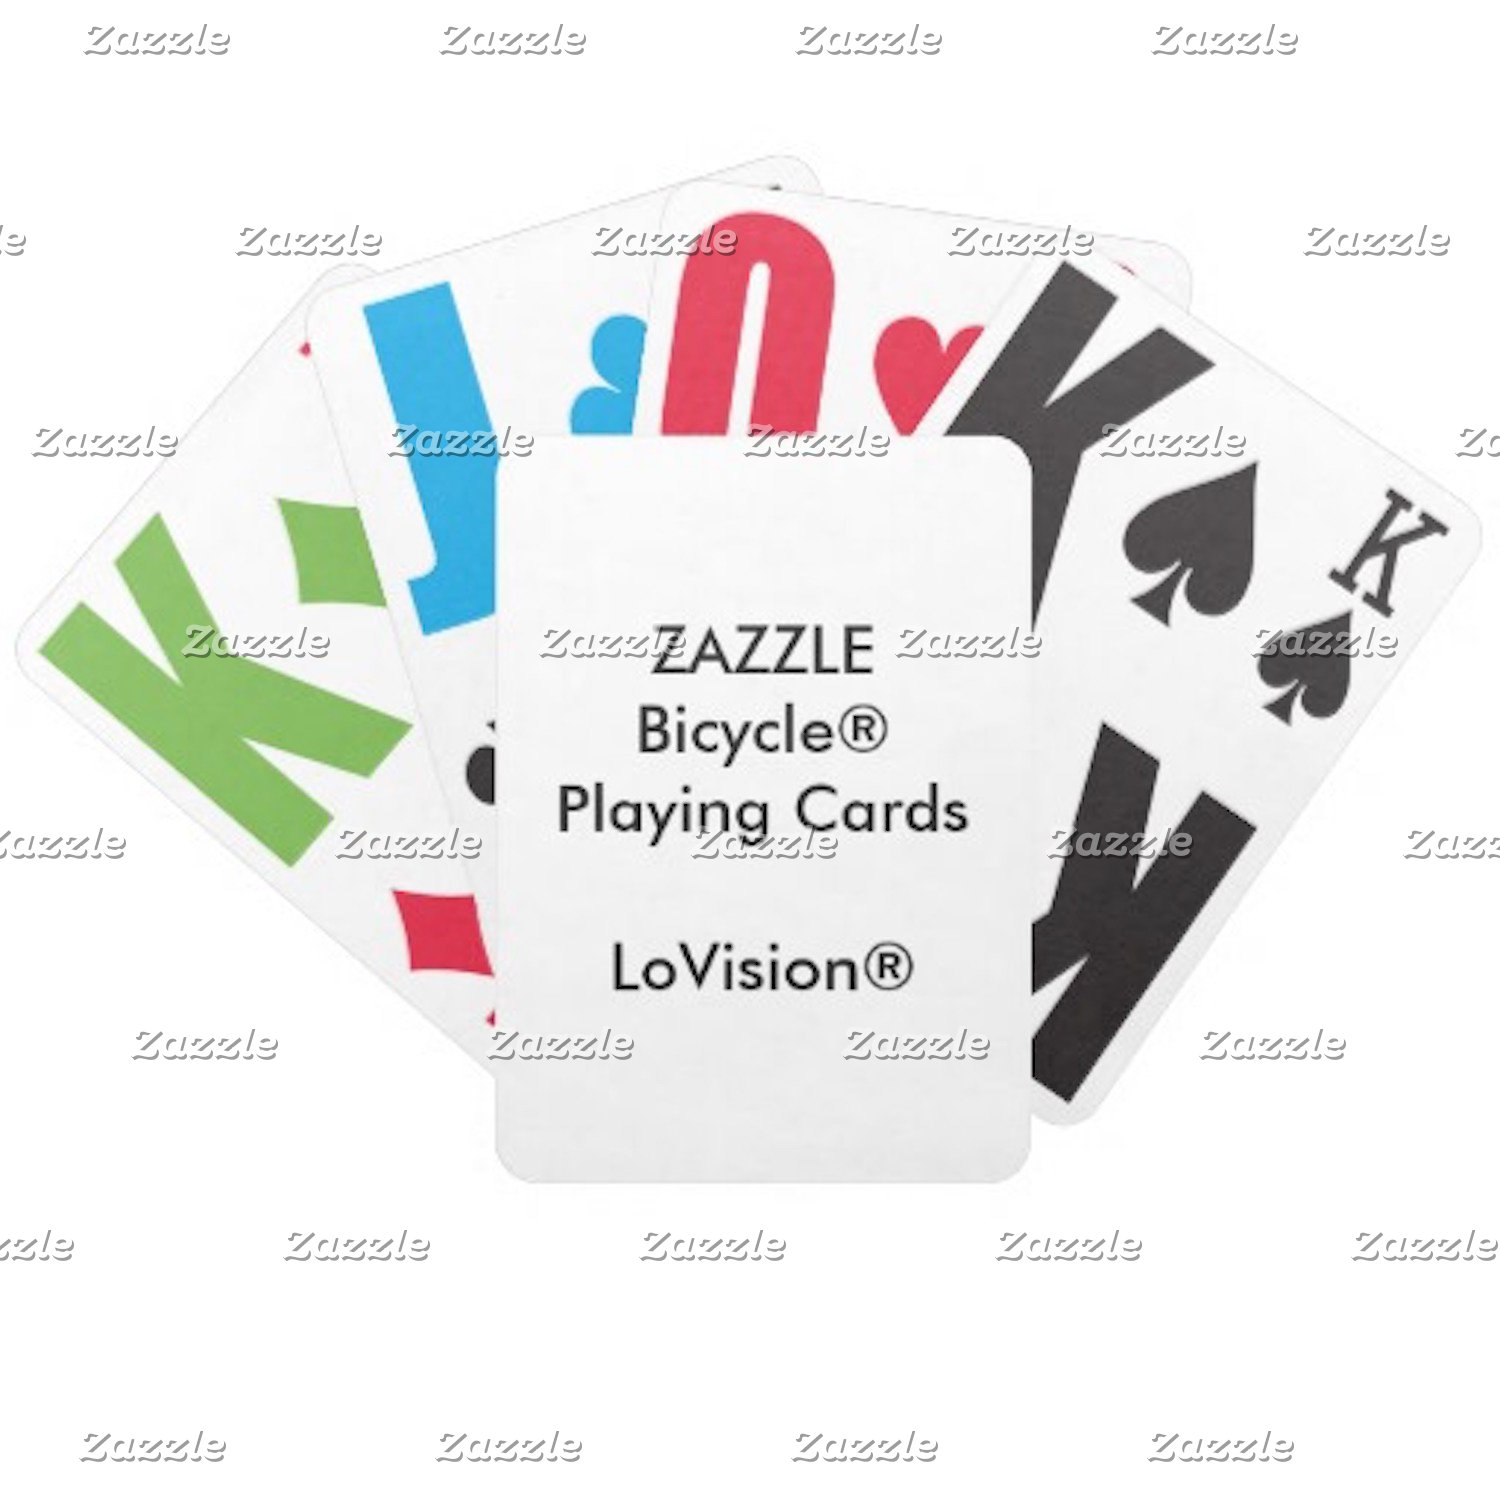 Bicycle® LoVision®